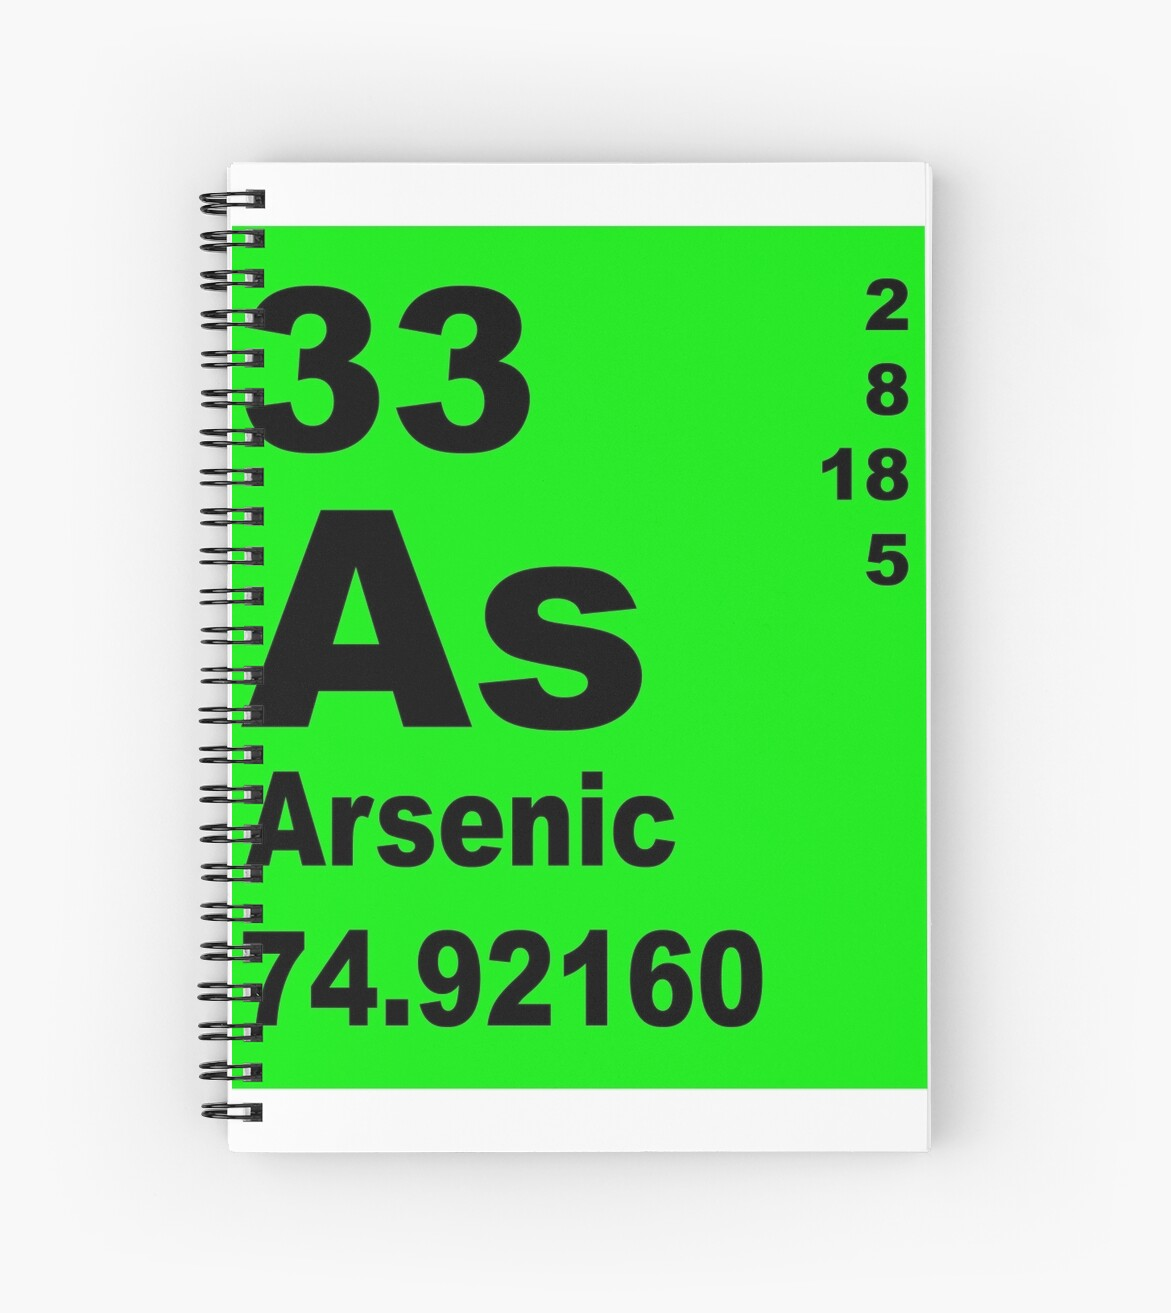 Arsenic periodic table of elements spiral notebooks by arsenic periodic table of elements by walterericsy gamestrikefo Image collections